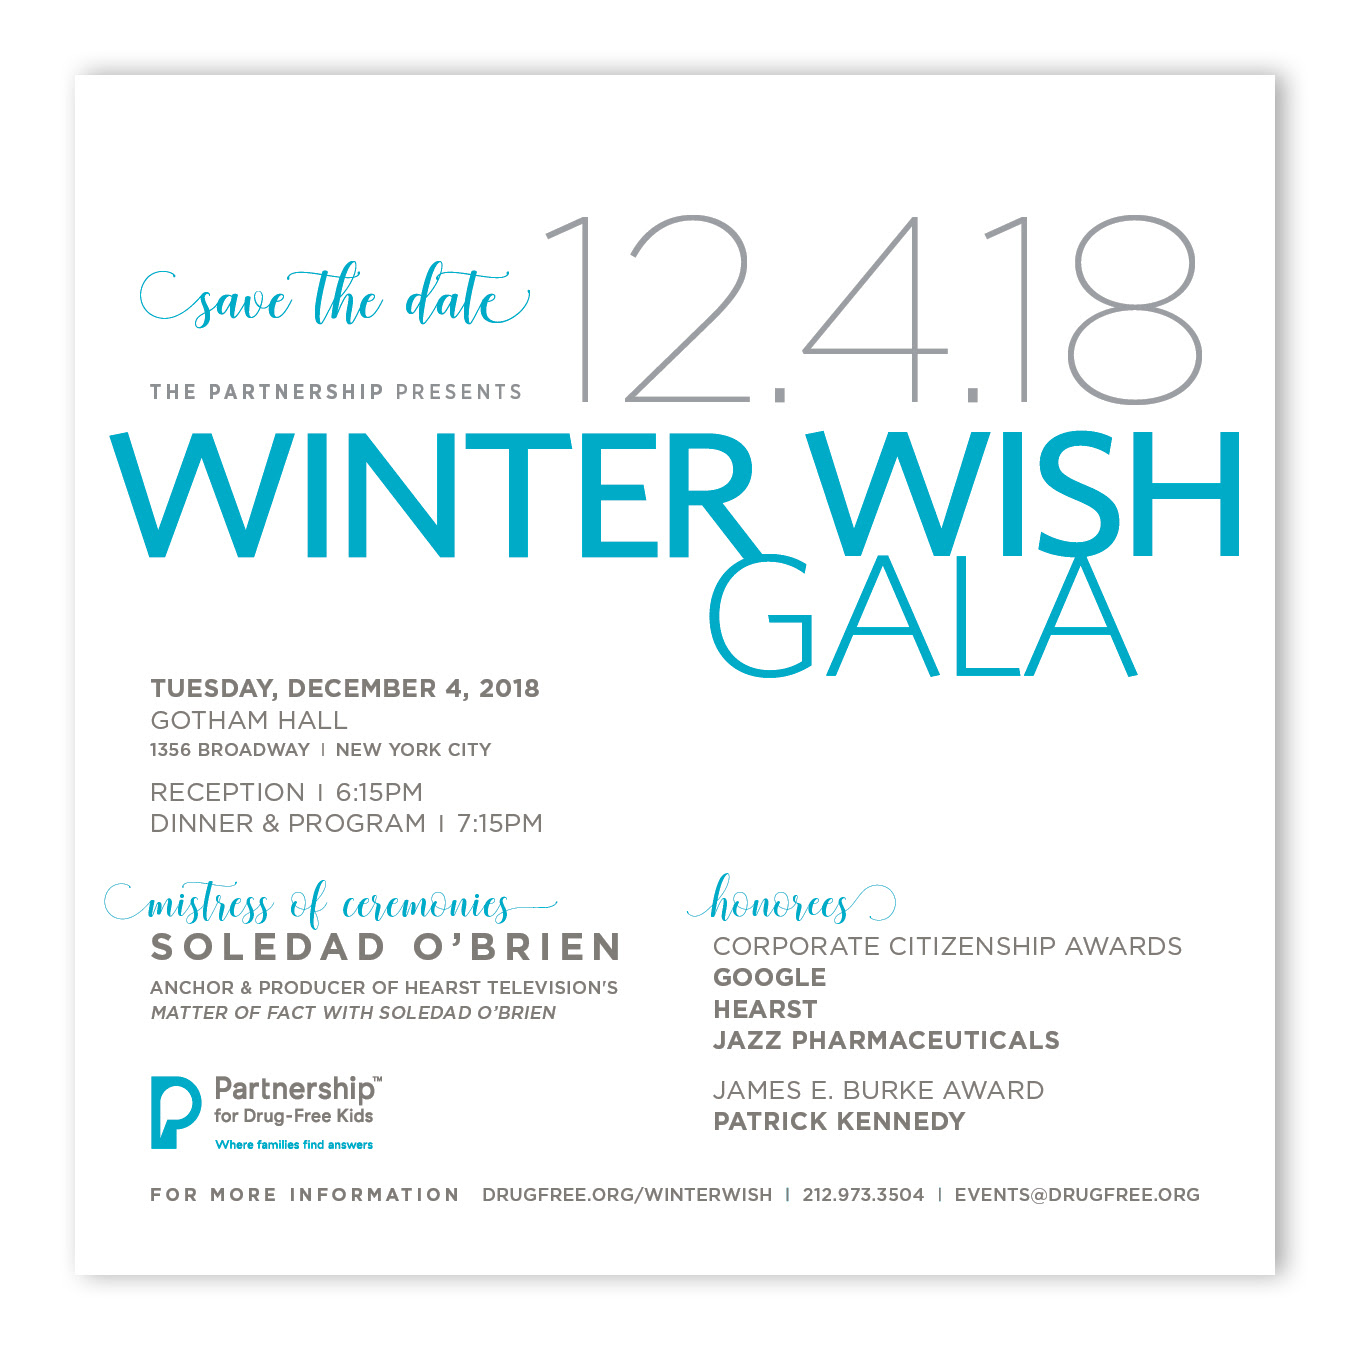 Winter Wish Gala - Tuesday, December 4, 2018; Gotham Hall, New York City | Reception | 6:15PM | Dinner & Program | 7:15PM - FOR MORE INFORMATION: DRUGFREE.ORG/WINTERWISH